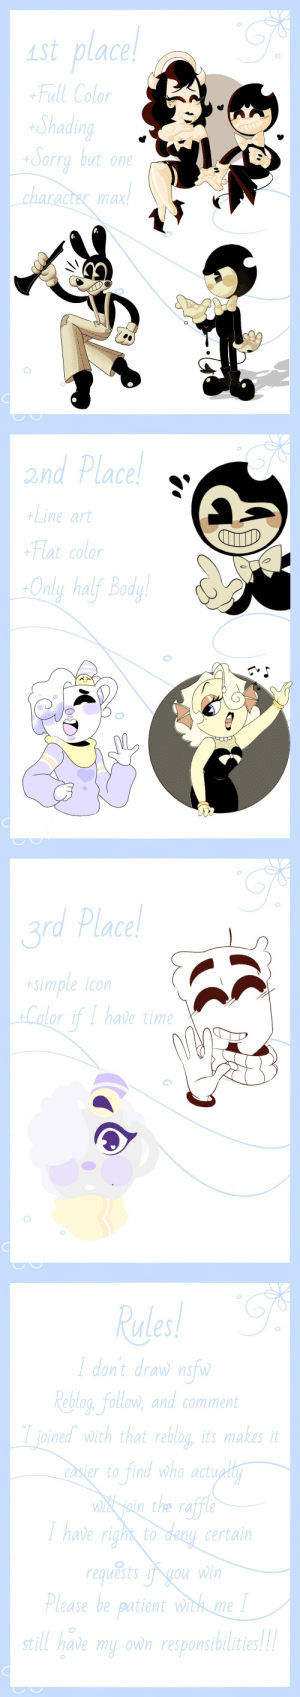 Tumblr, Blog, and Time: st place  Full Color  Shadi  tOorru but one  .ch  aract& max   2nd Place!  Line art  Flat color  Only half Bod  1   rd Place  simple icon  Calor if I have time   Les  dont drawn  Rlog fellon, and commen  joined with that reblog, its makes it  sier to find who actuoli  iain the raffle  have righs  have righs to deay certain  requ&ts i you win  ase be paient withme  till have my ovwn responsibilities ramenlovin:  ramenlovin:  Art raffle is up guys you have until May 10th!  Art raffle still up!